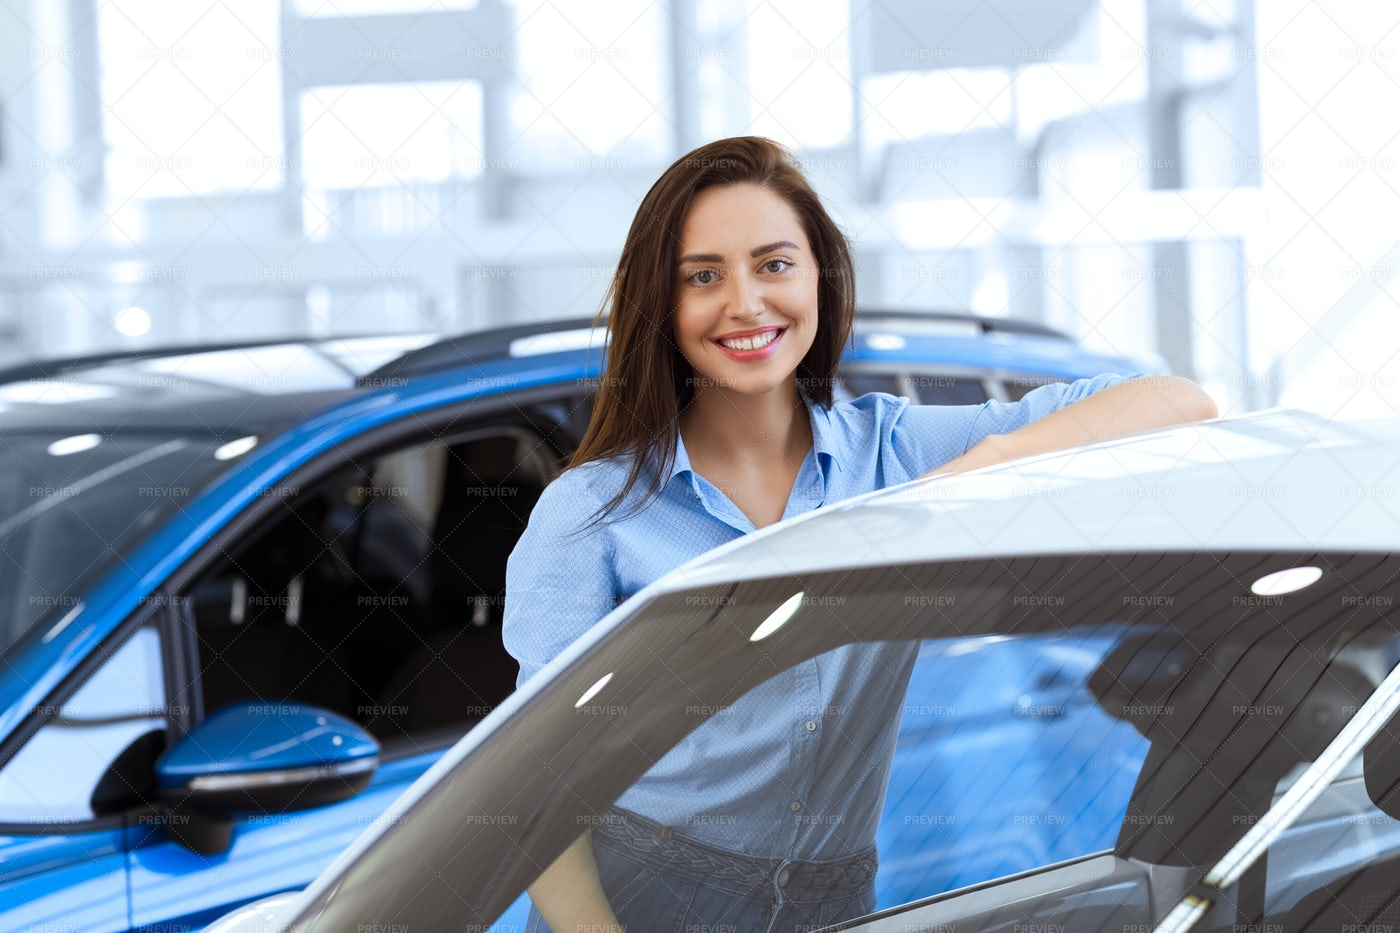 Woman Browsing New Cars: Stock Photos